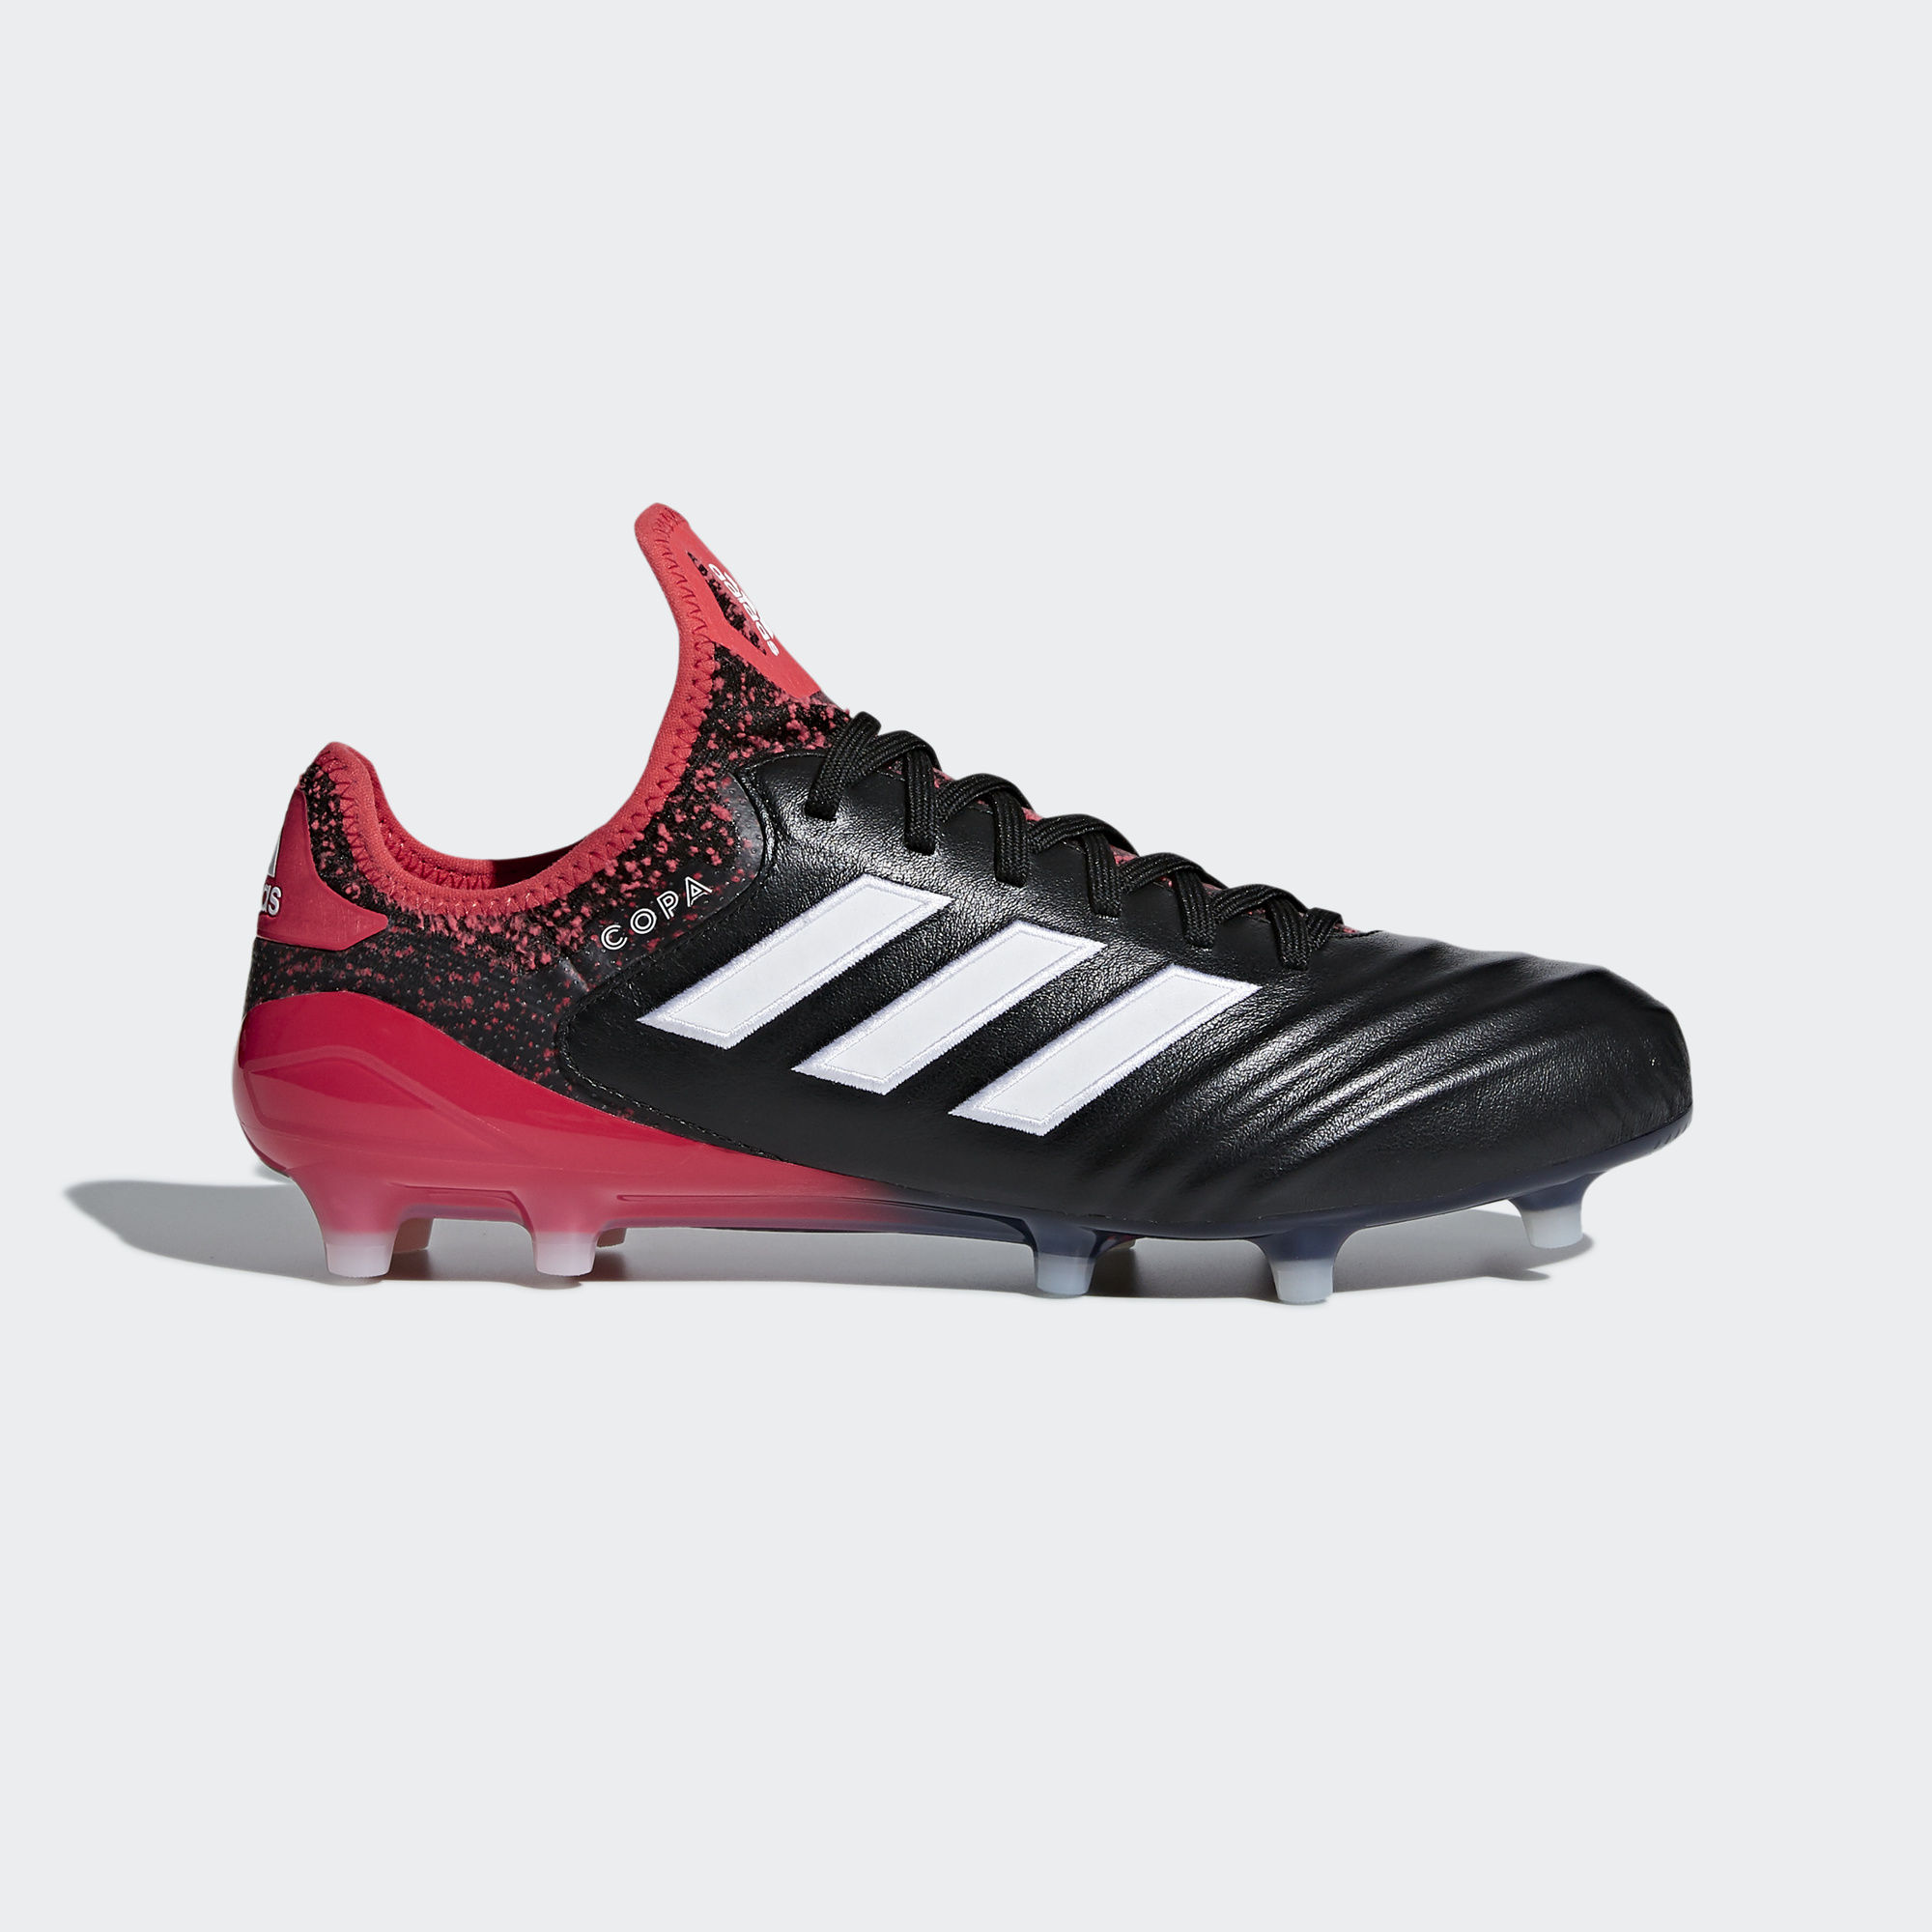 Adidas Copa 18.1 FG Cold Blooded - Core Black / Ftwr White ...